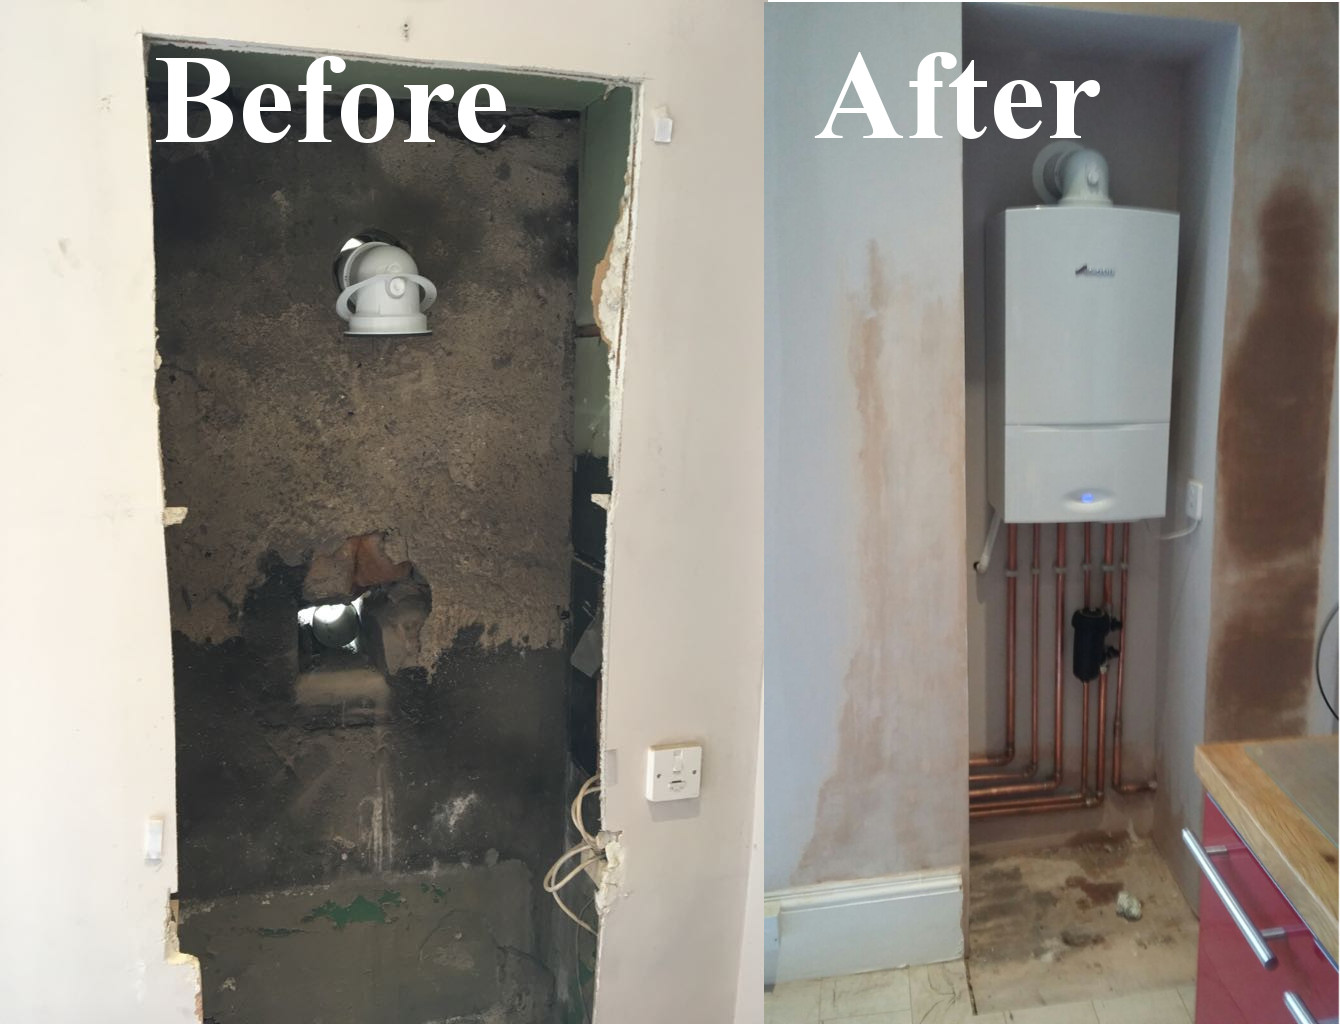 Boiler replacement paisley services before and after photo of boiler installation